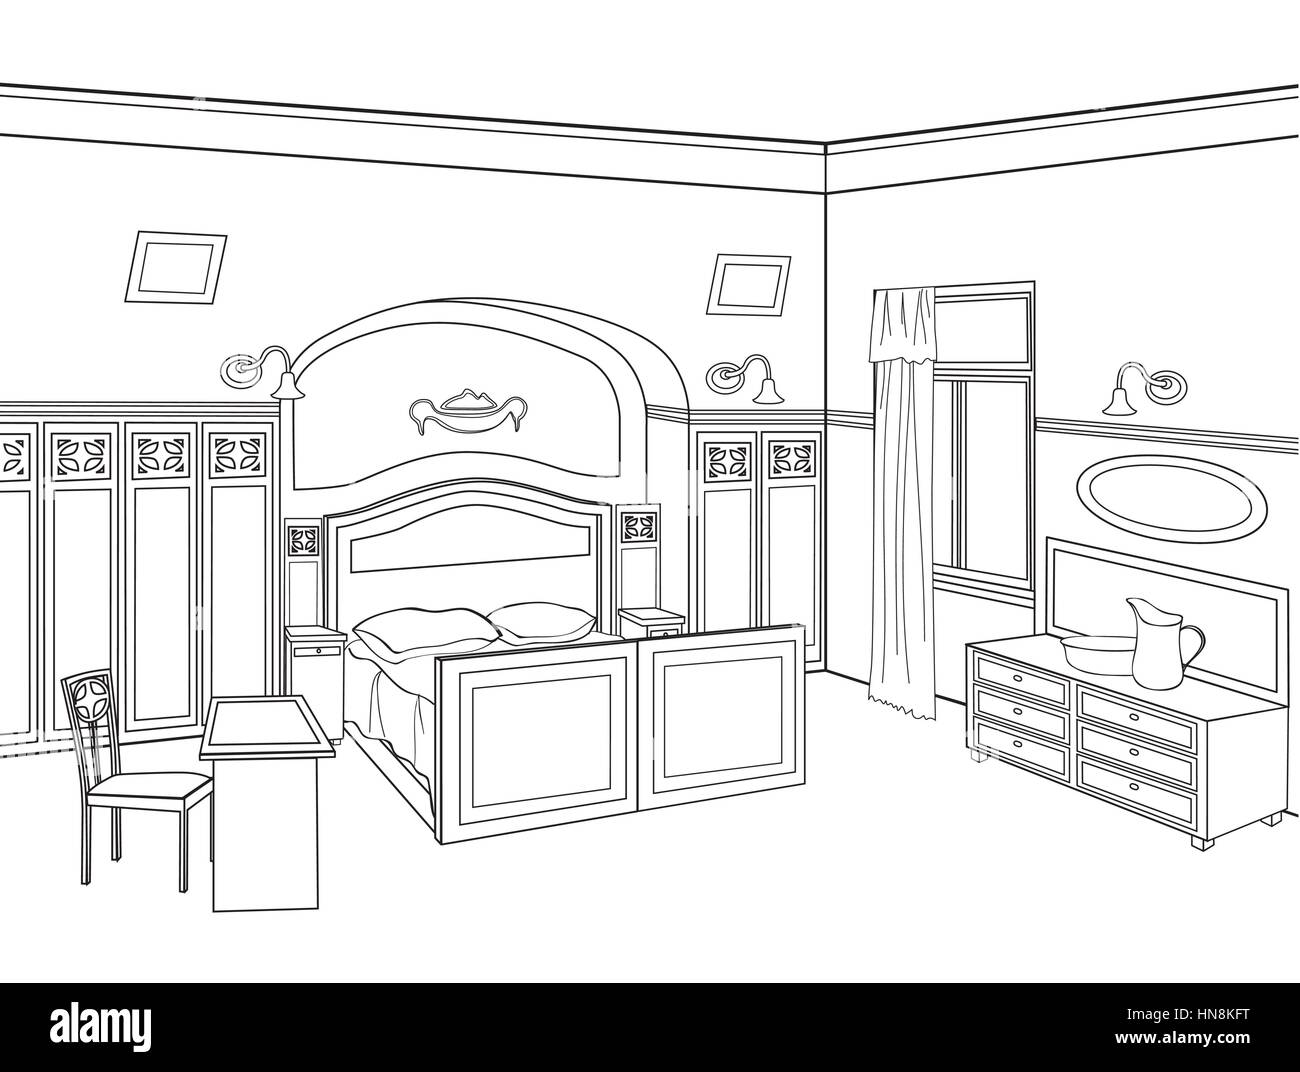 Bedroom Furniture Editable Vector Illustration Of An